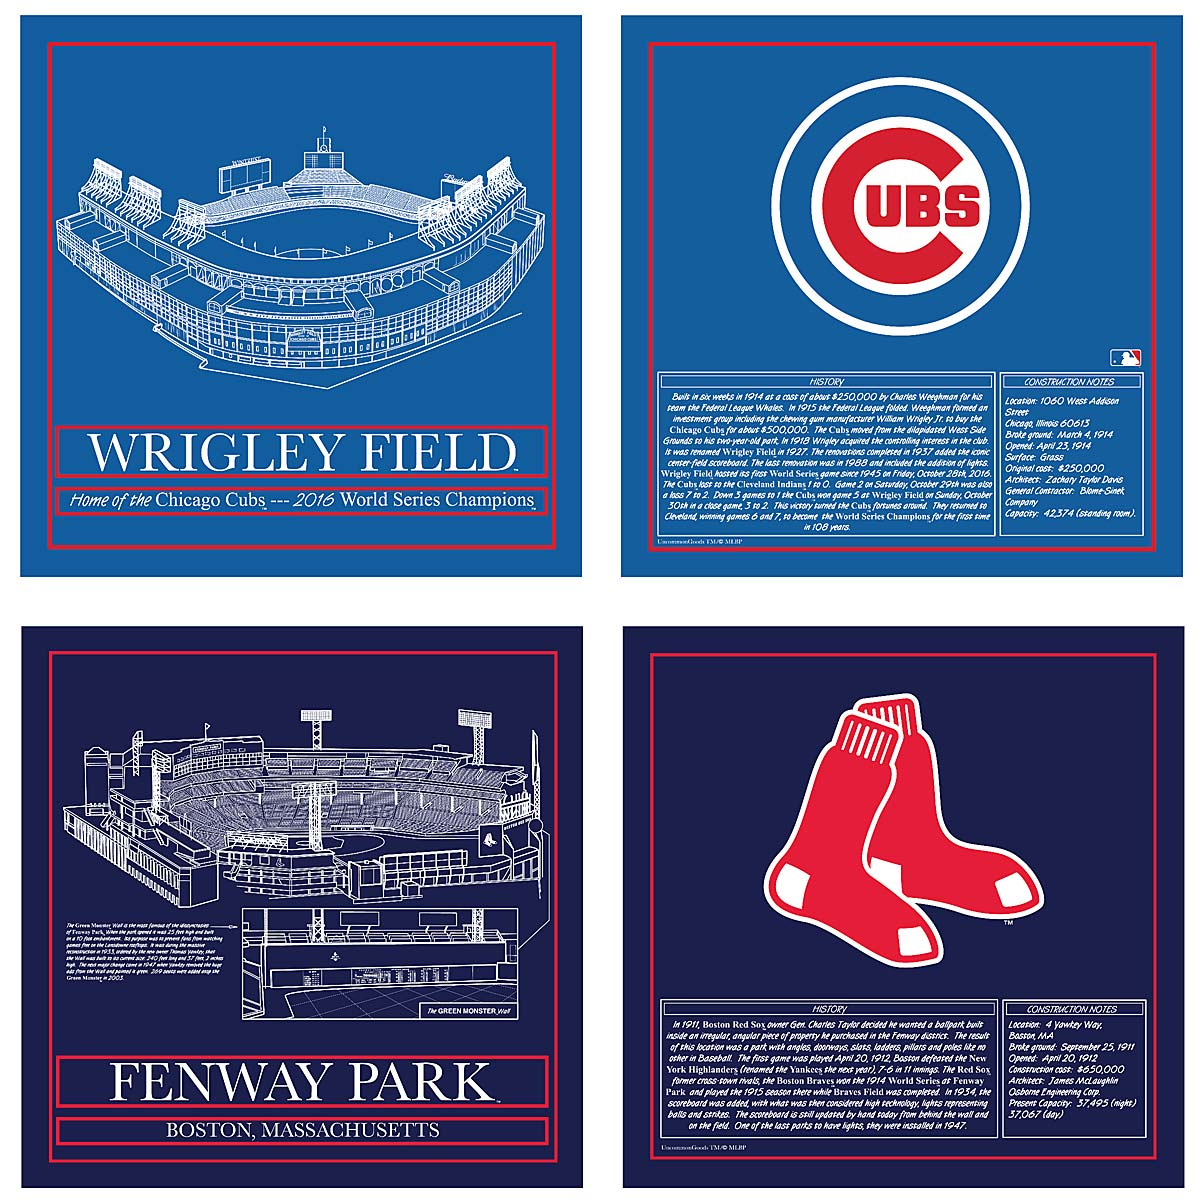 Baseball Stadium Blueprint Pillows Team Colors Sports